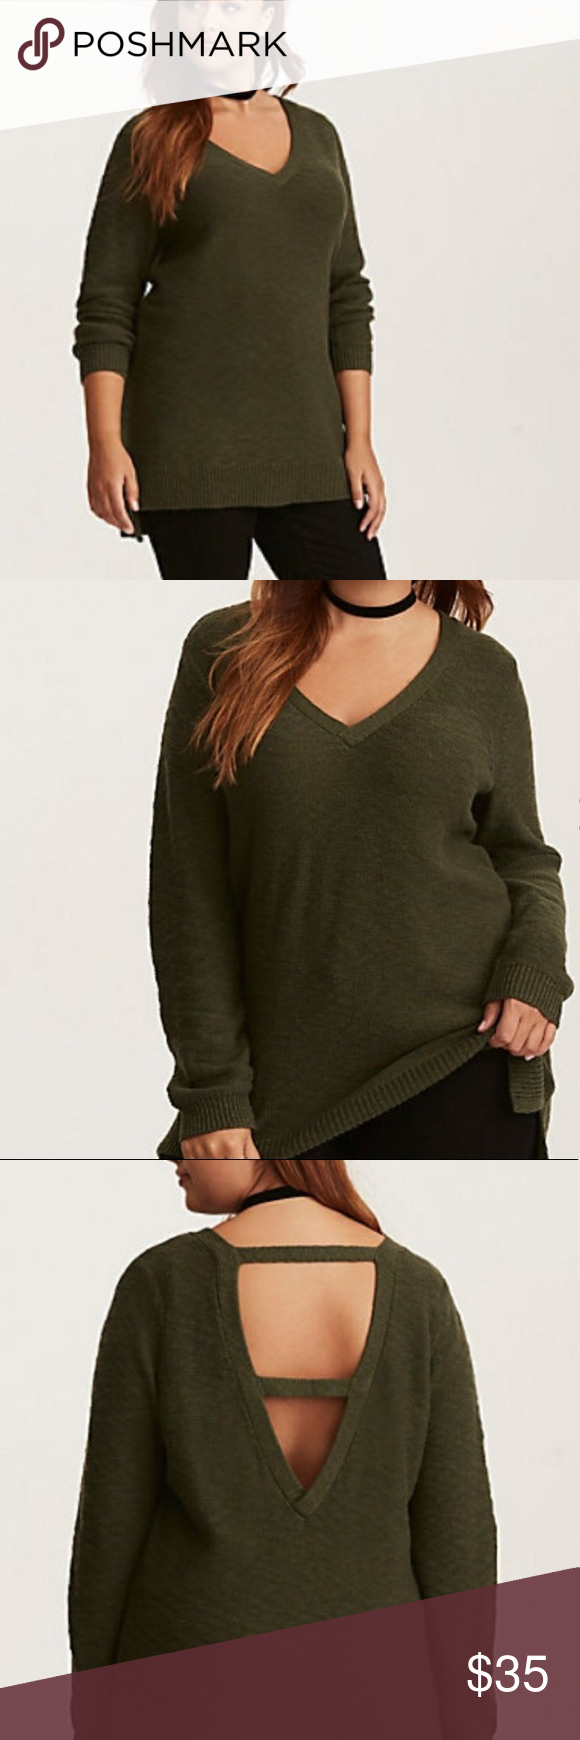 Dark Green Plus Size Back Strap Tunic Sweater | Light wash jeans ...